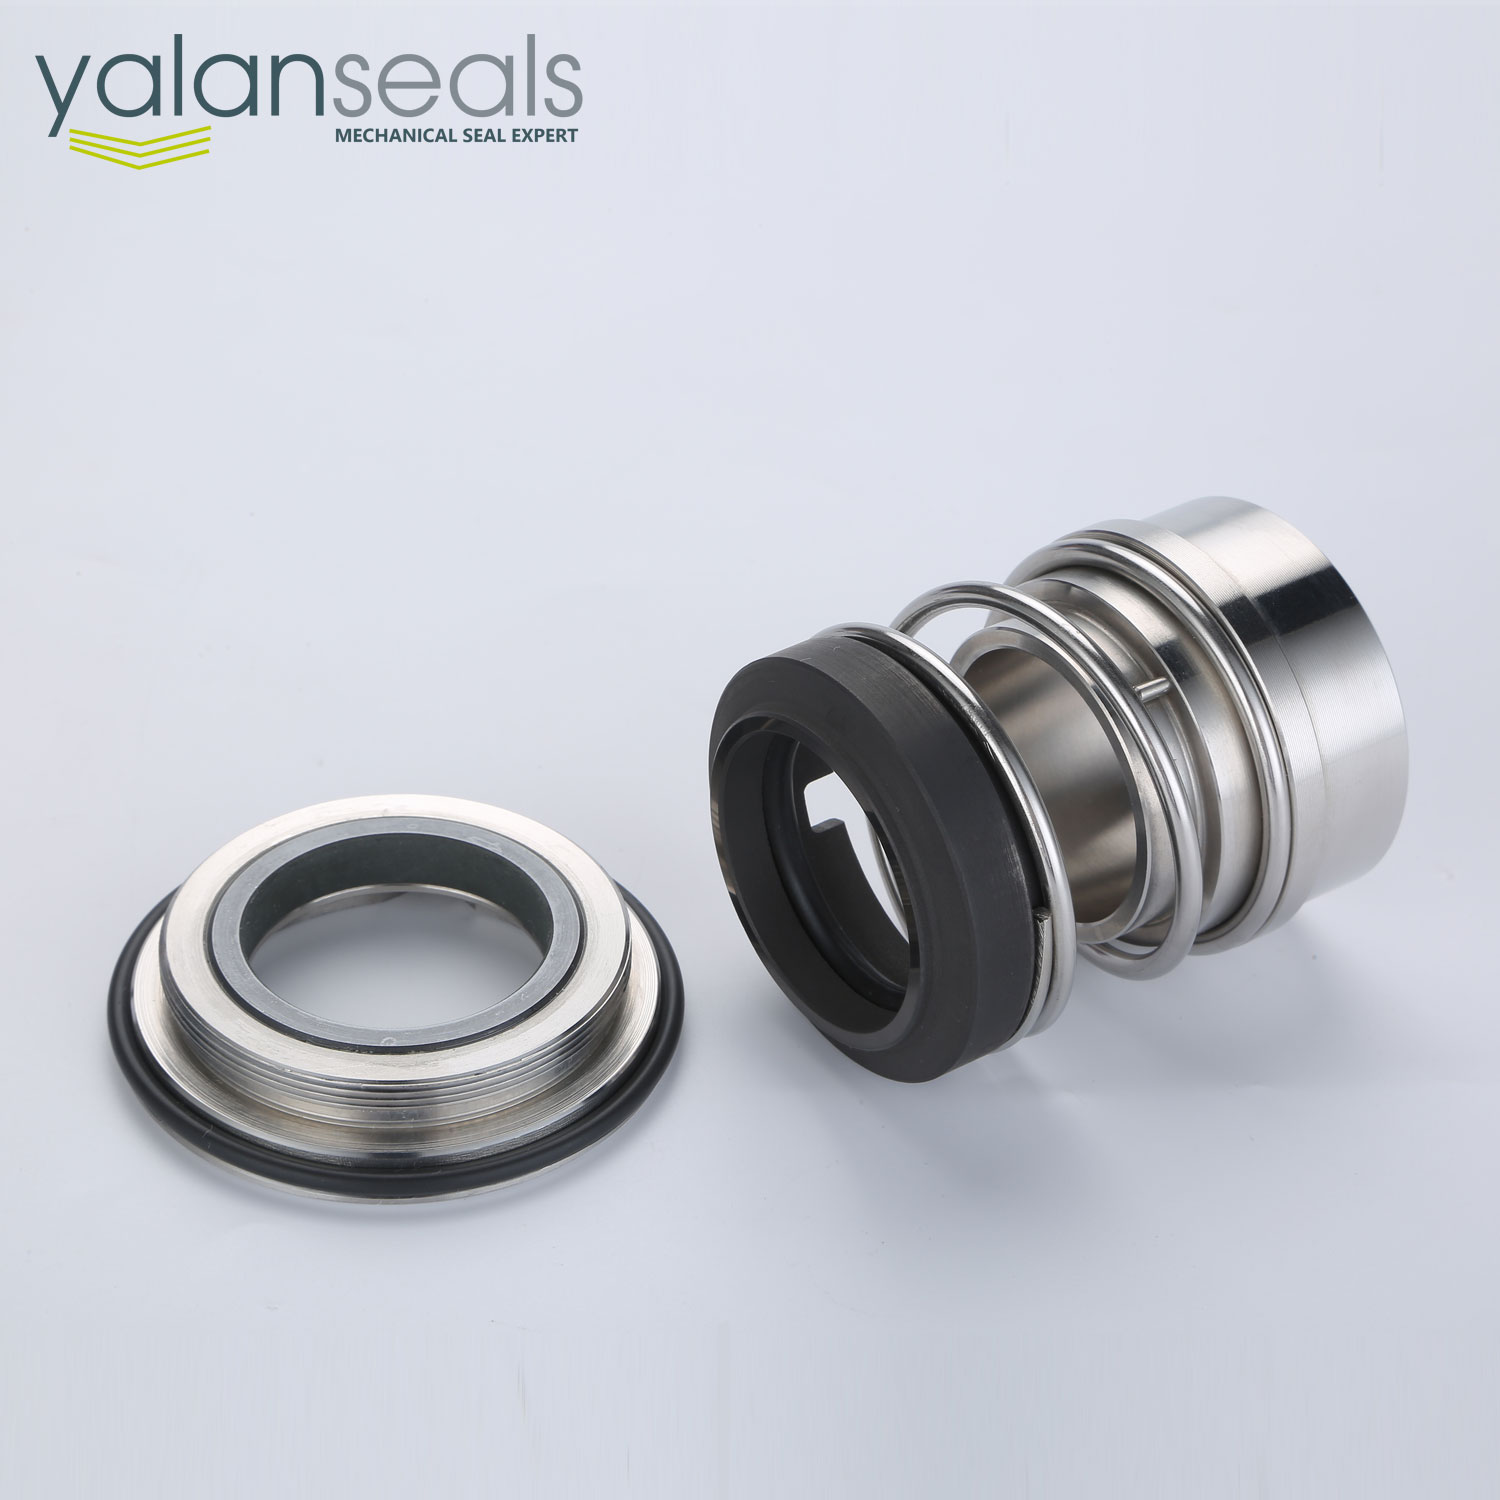 LKH Mechanical Seal for Alfa-Laval LKH Centrifugal Pumps